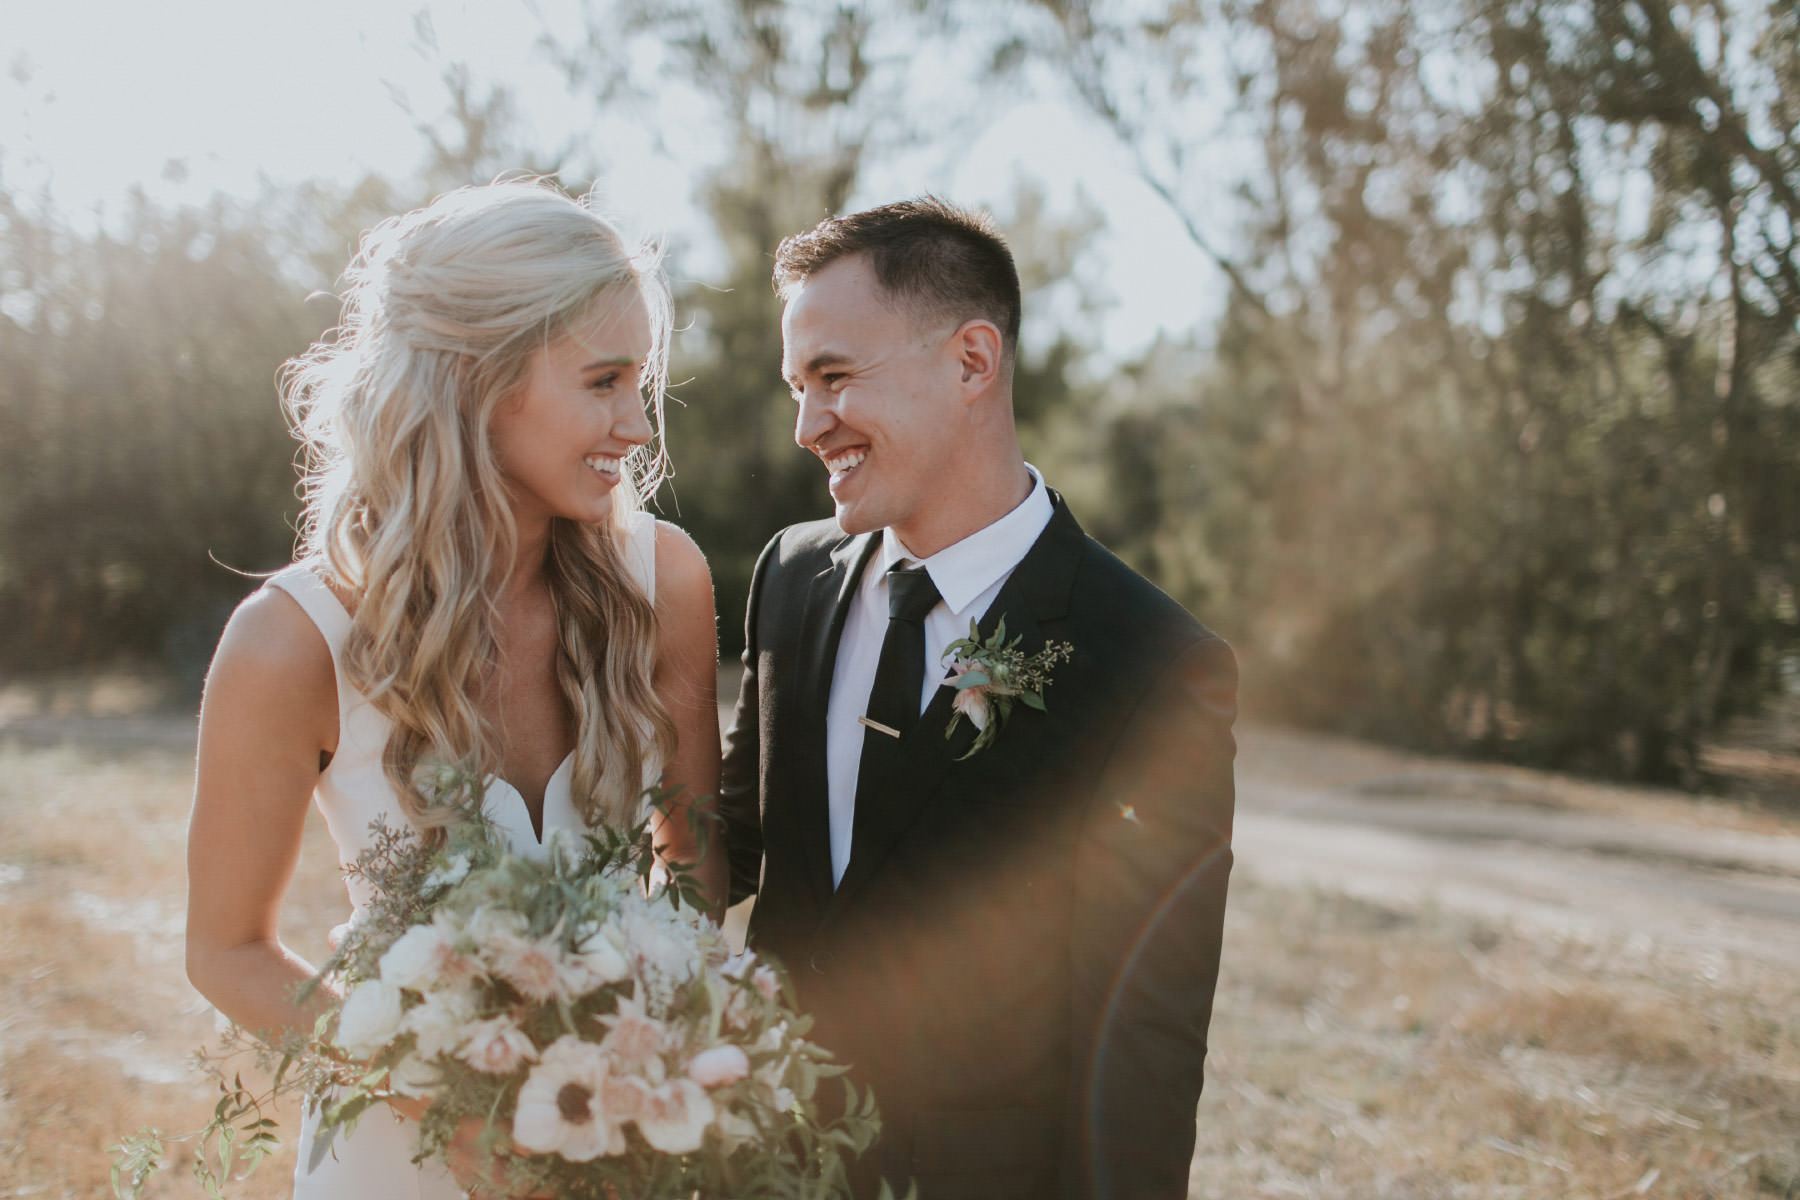 Bride and groom laughing in field during golden hour in Rancho Santa Fe